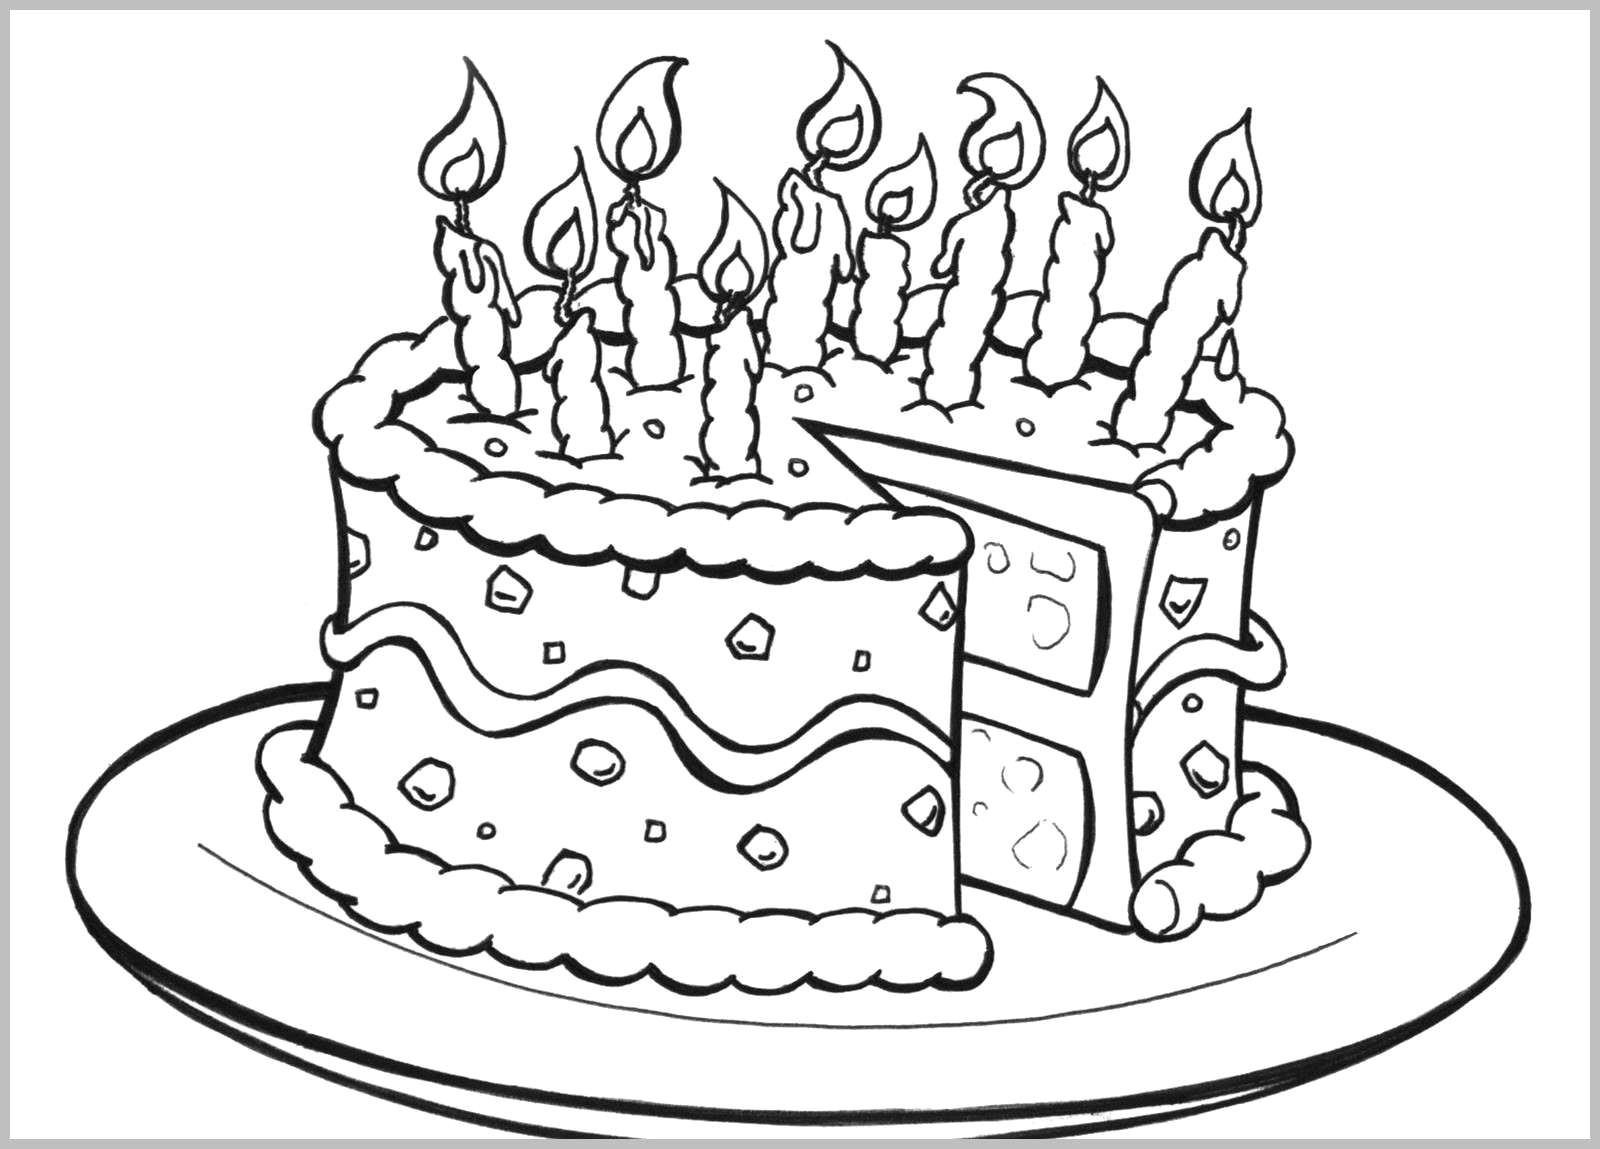 Free Printable Birthday Cake Coloring Pages For Kids Cool2Bkids - Free Printable Pictures Of Birthday Cakes